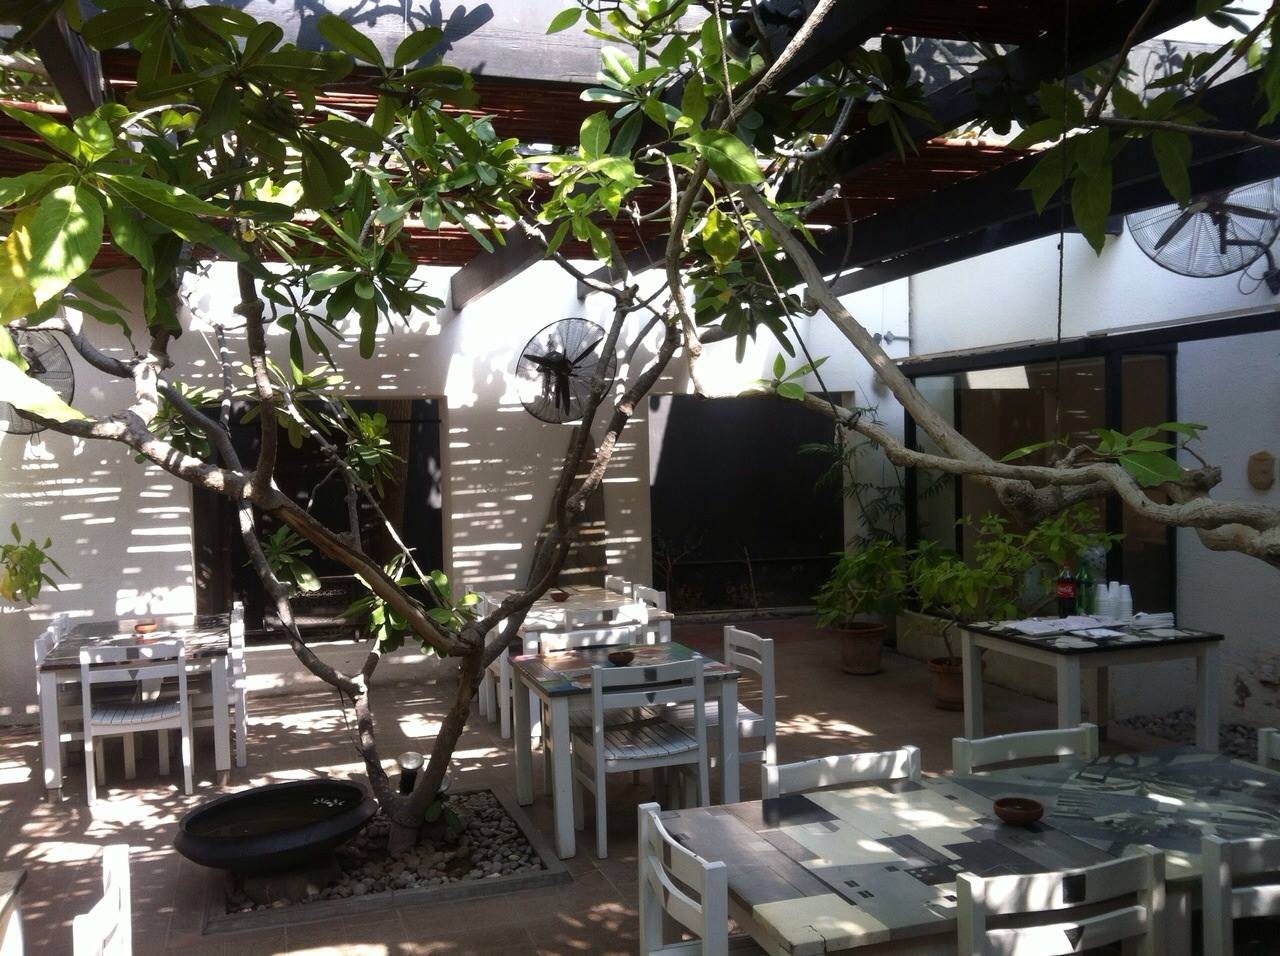 9 2 - Koel Cafe and Gallery: Food Elevated to Art